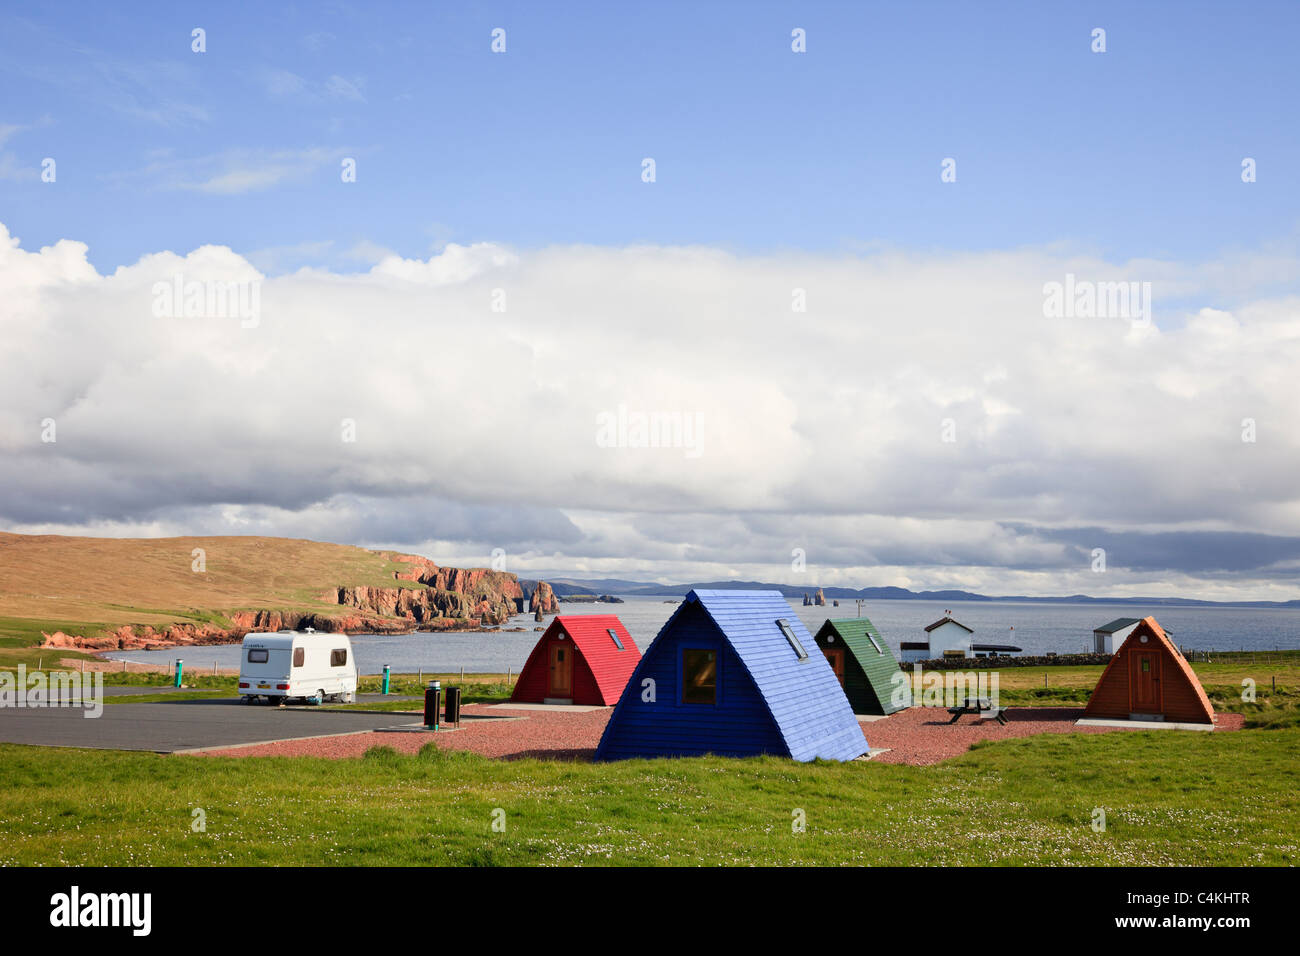 Eshaness, Shetland Islands, Scotland, UK. Wooden wigwams in Braewick cafe campsite on the coast overlooking the - Stock Image